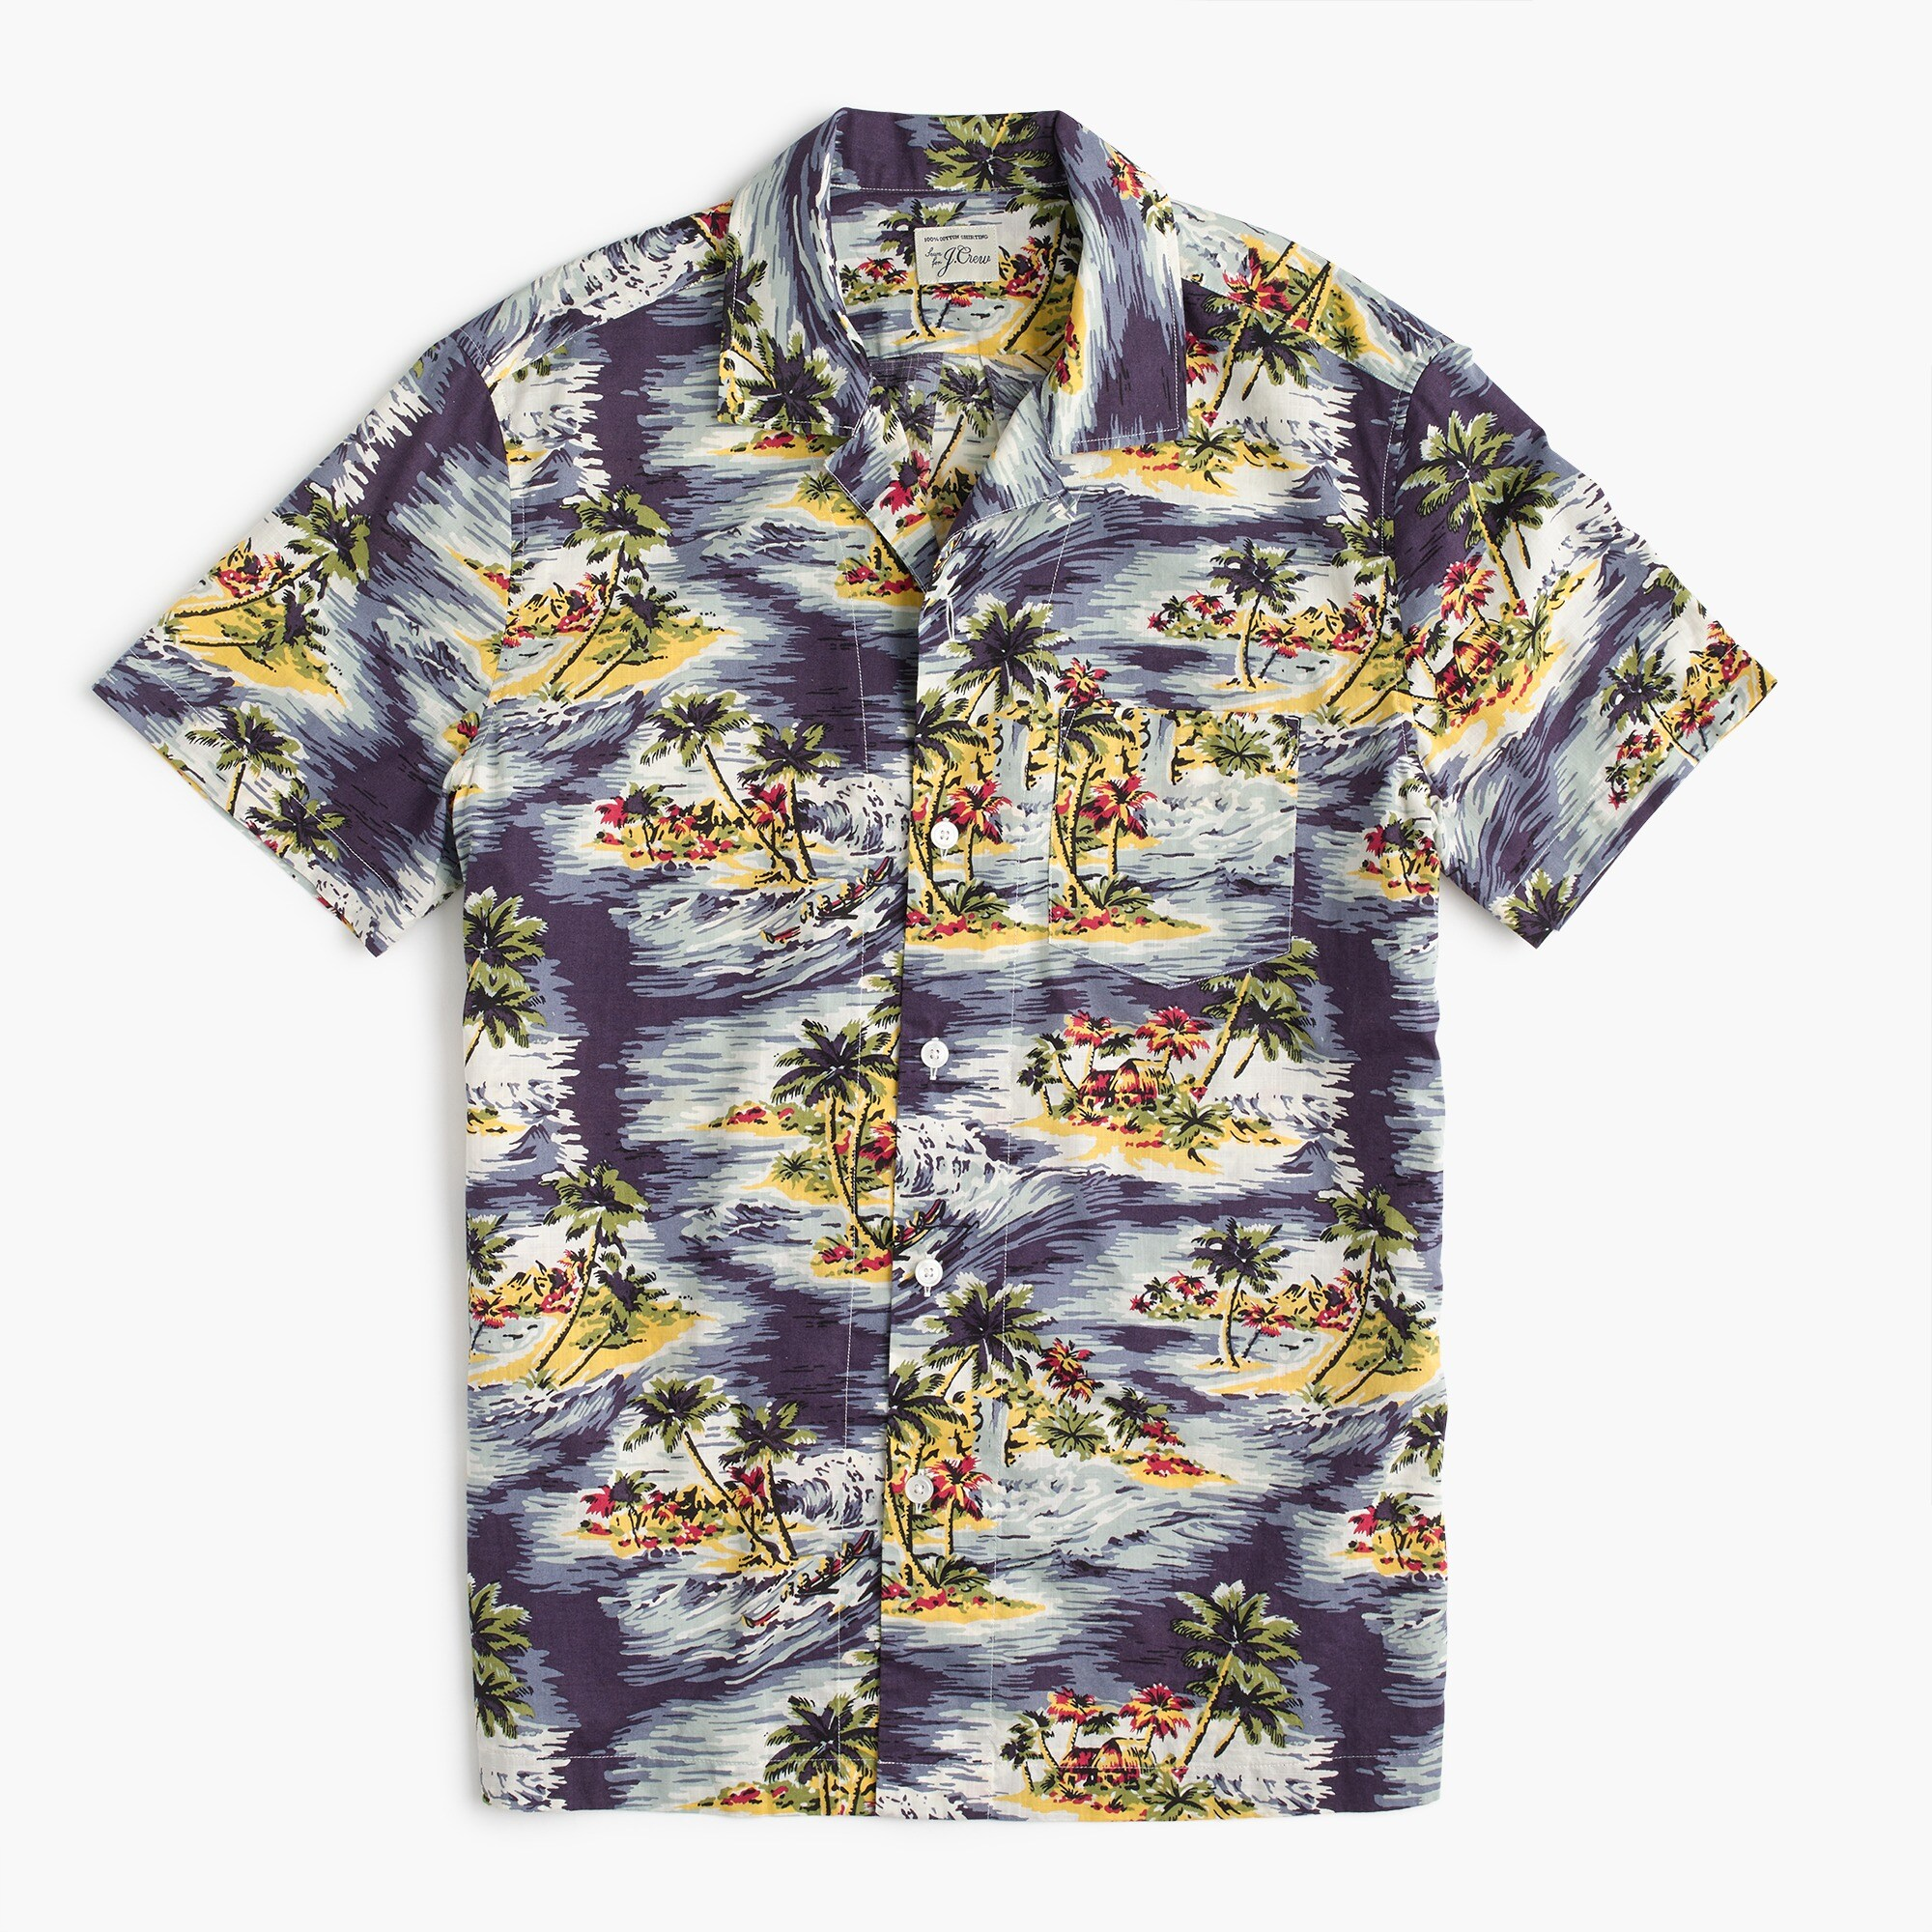 Image 2 for Short-sleeve camp-collar shirt in wave print